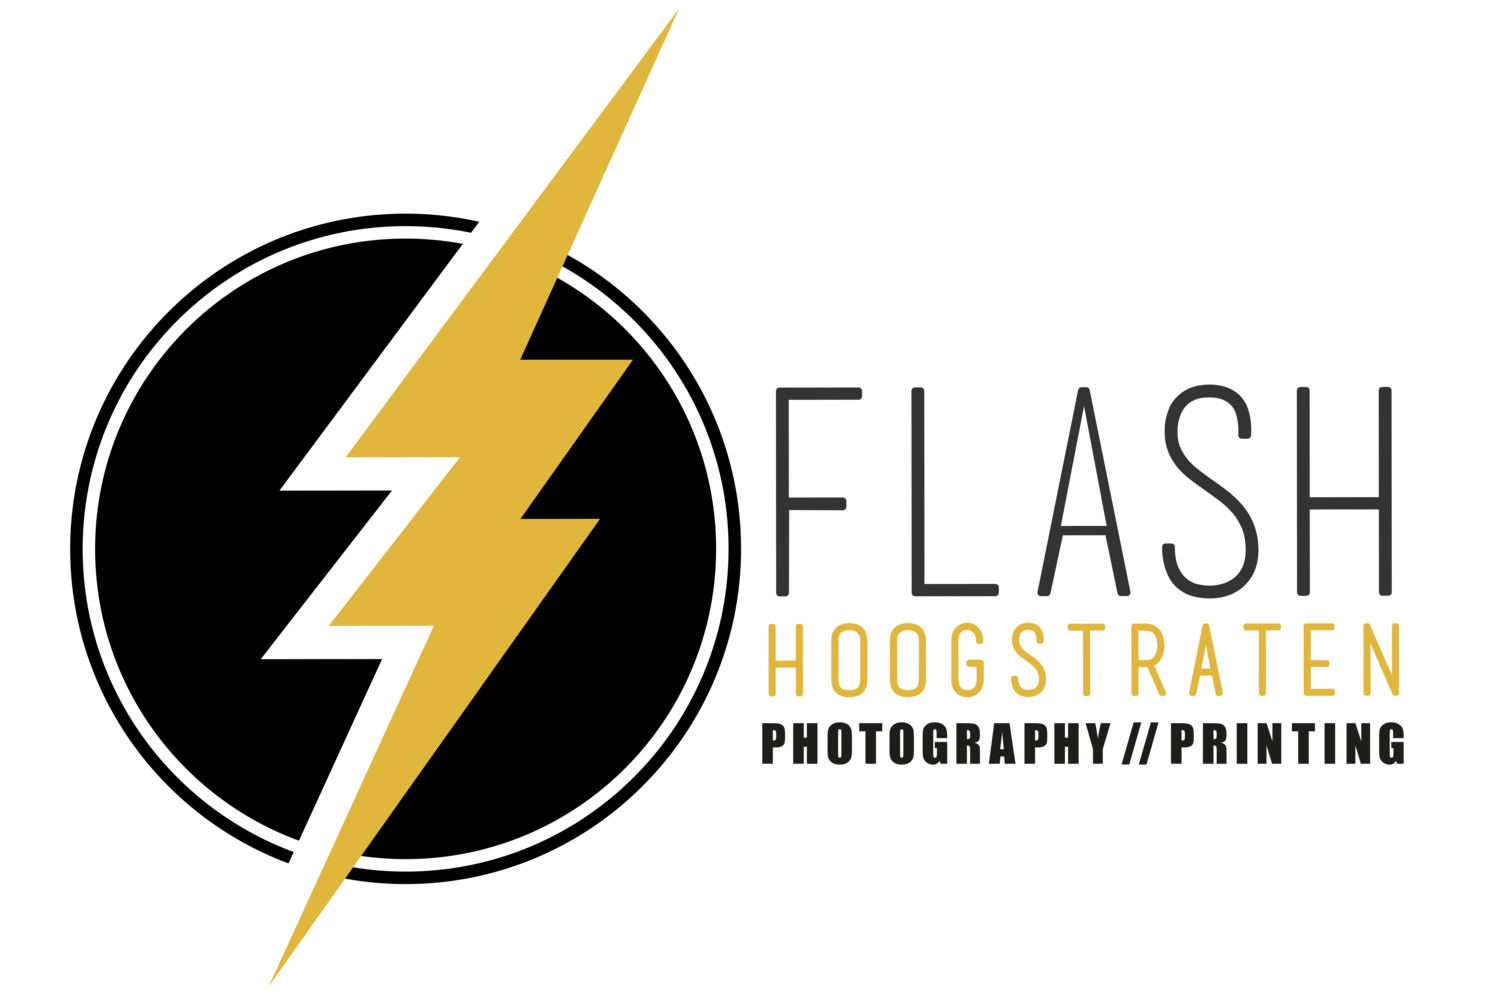 Flash Hoogstraten